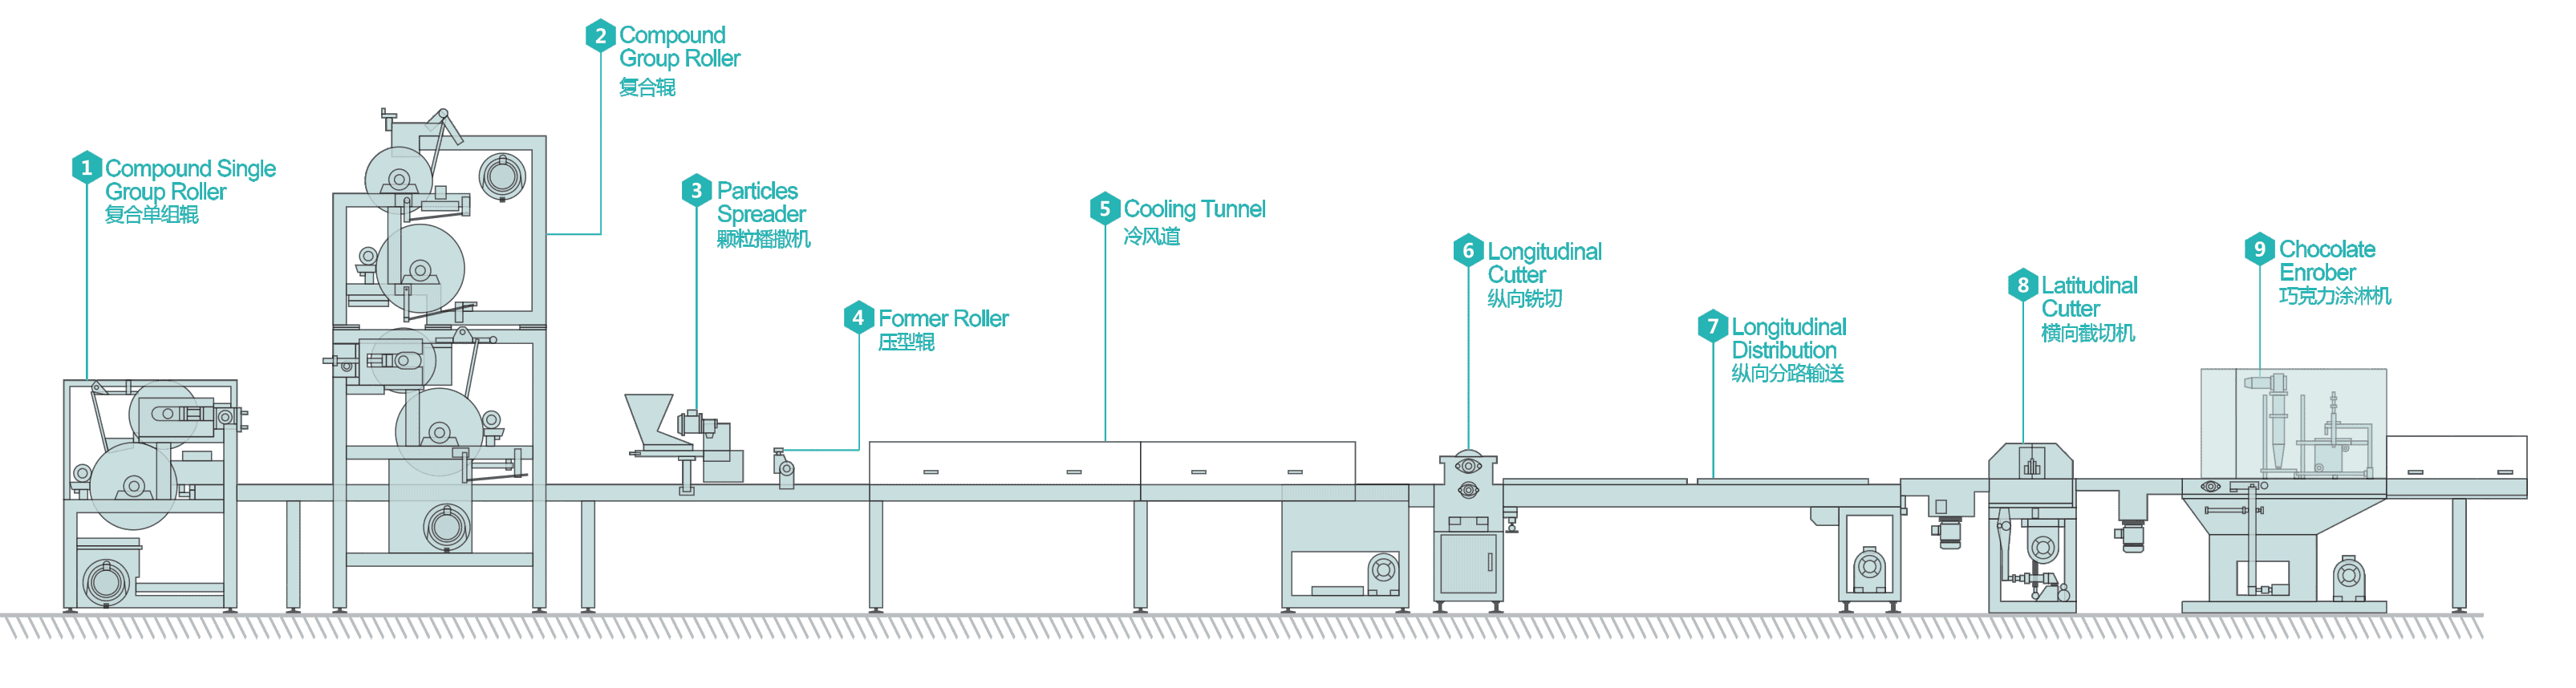 compound candy bar making line mechanical composition